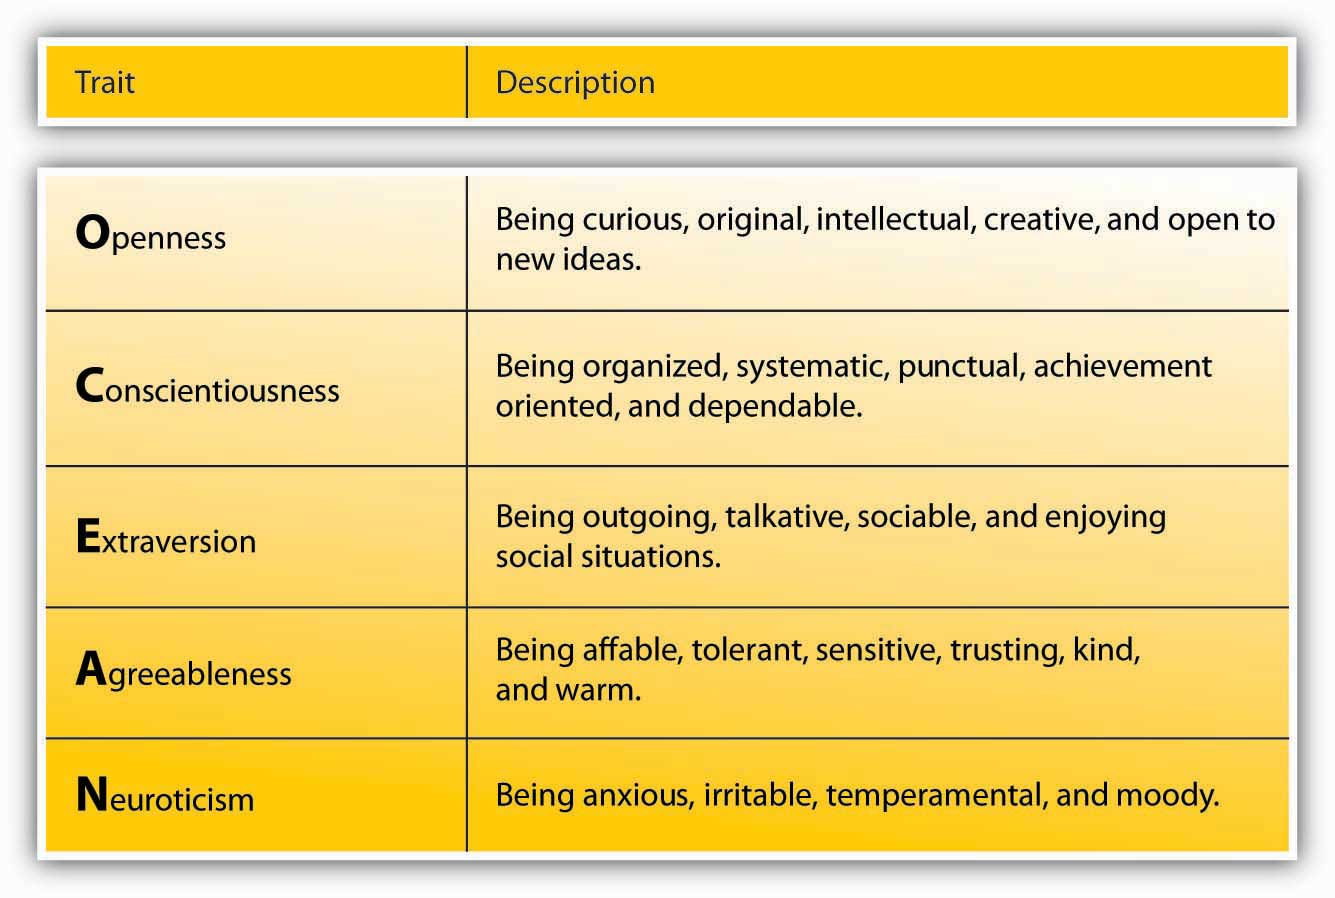 major personality attributes influencing in organisational behaviourb Personality traits and workplace culture organizational culture can be described as a set of collective beliefs and values that influence behavior the integrated cultural the third column offers a short description of the matching personality traits for each organizational culture.